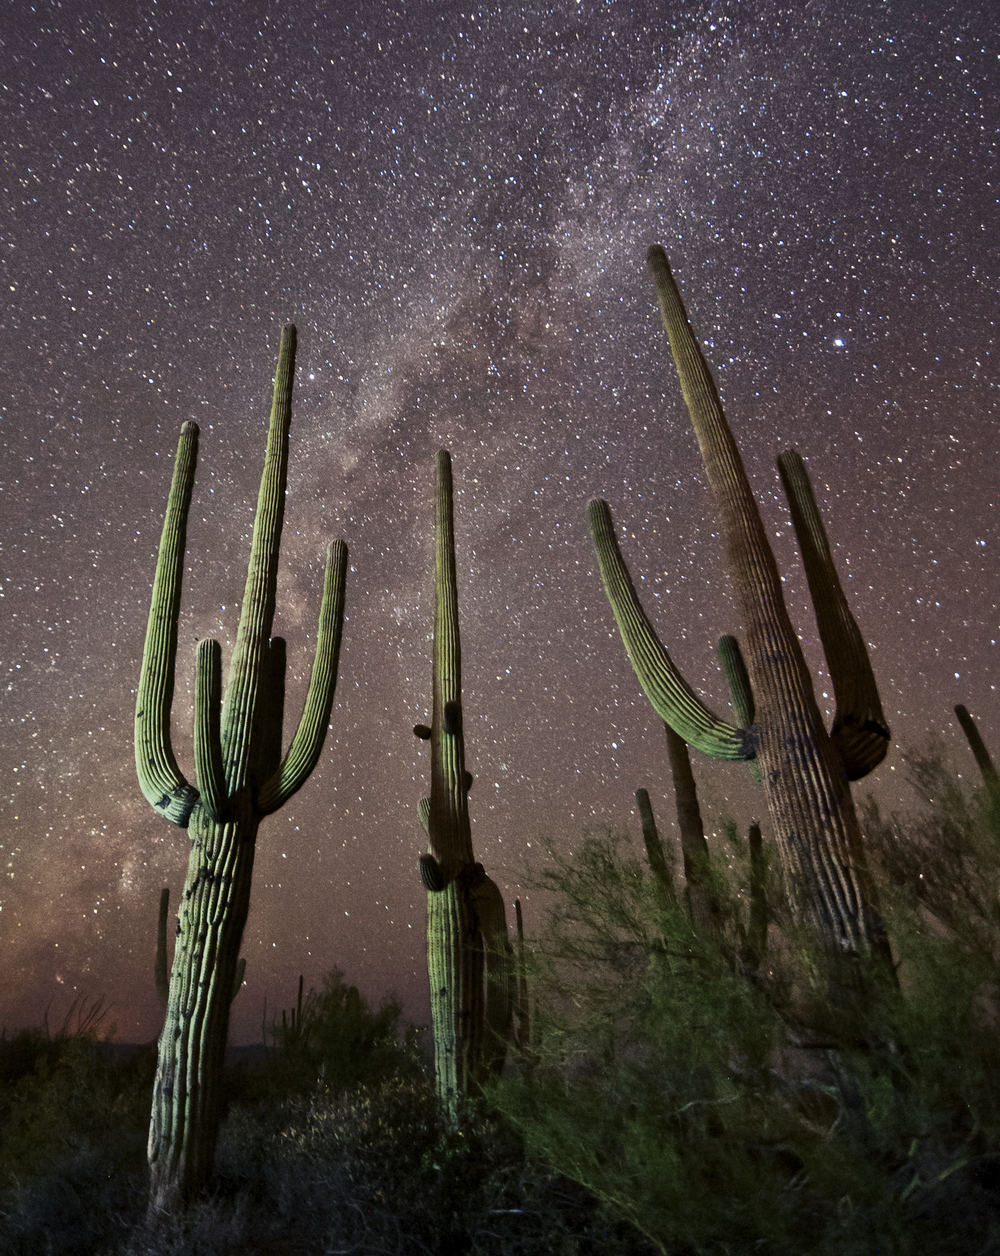 Photo by saguaropics/iStock / Getty Images